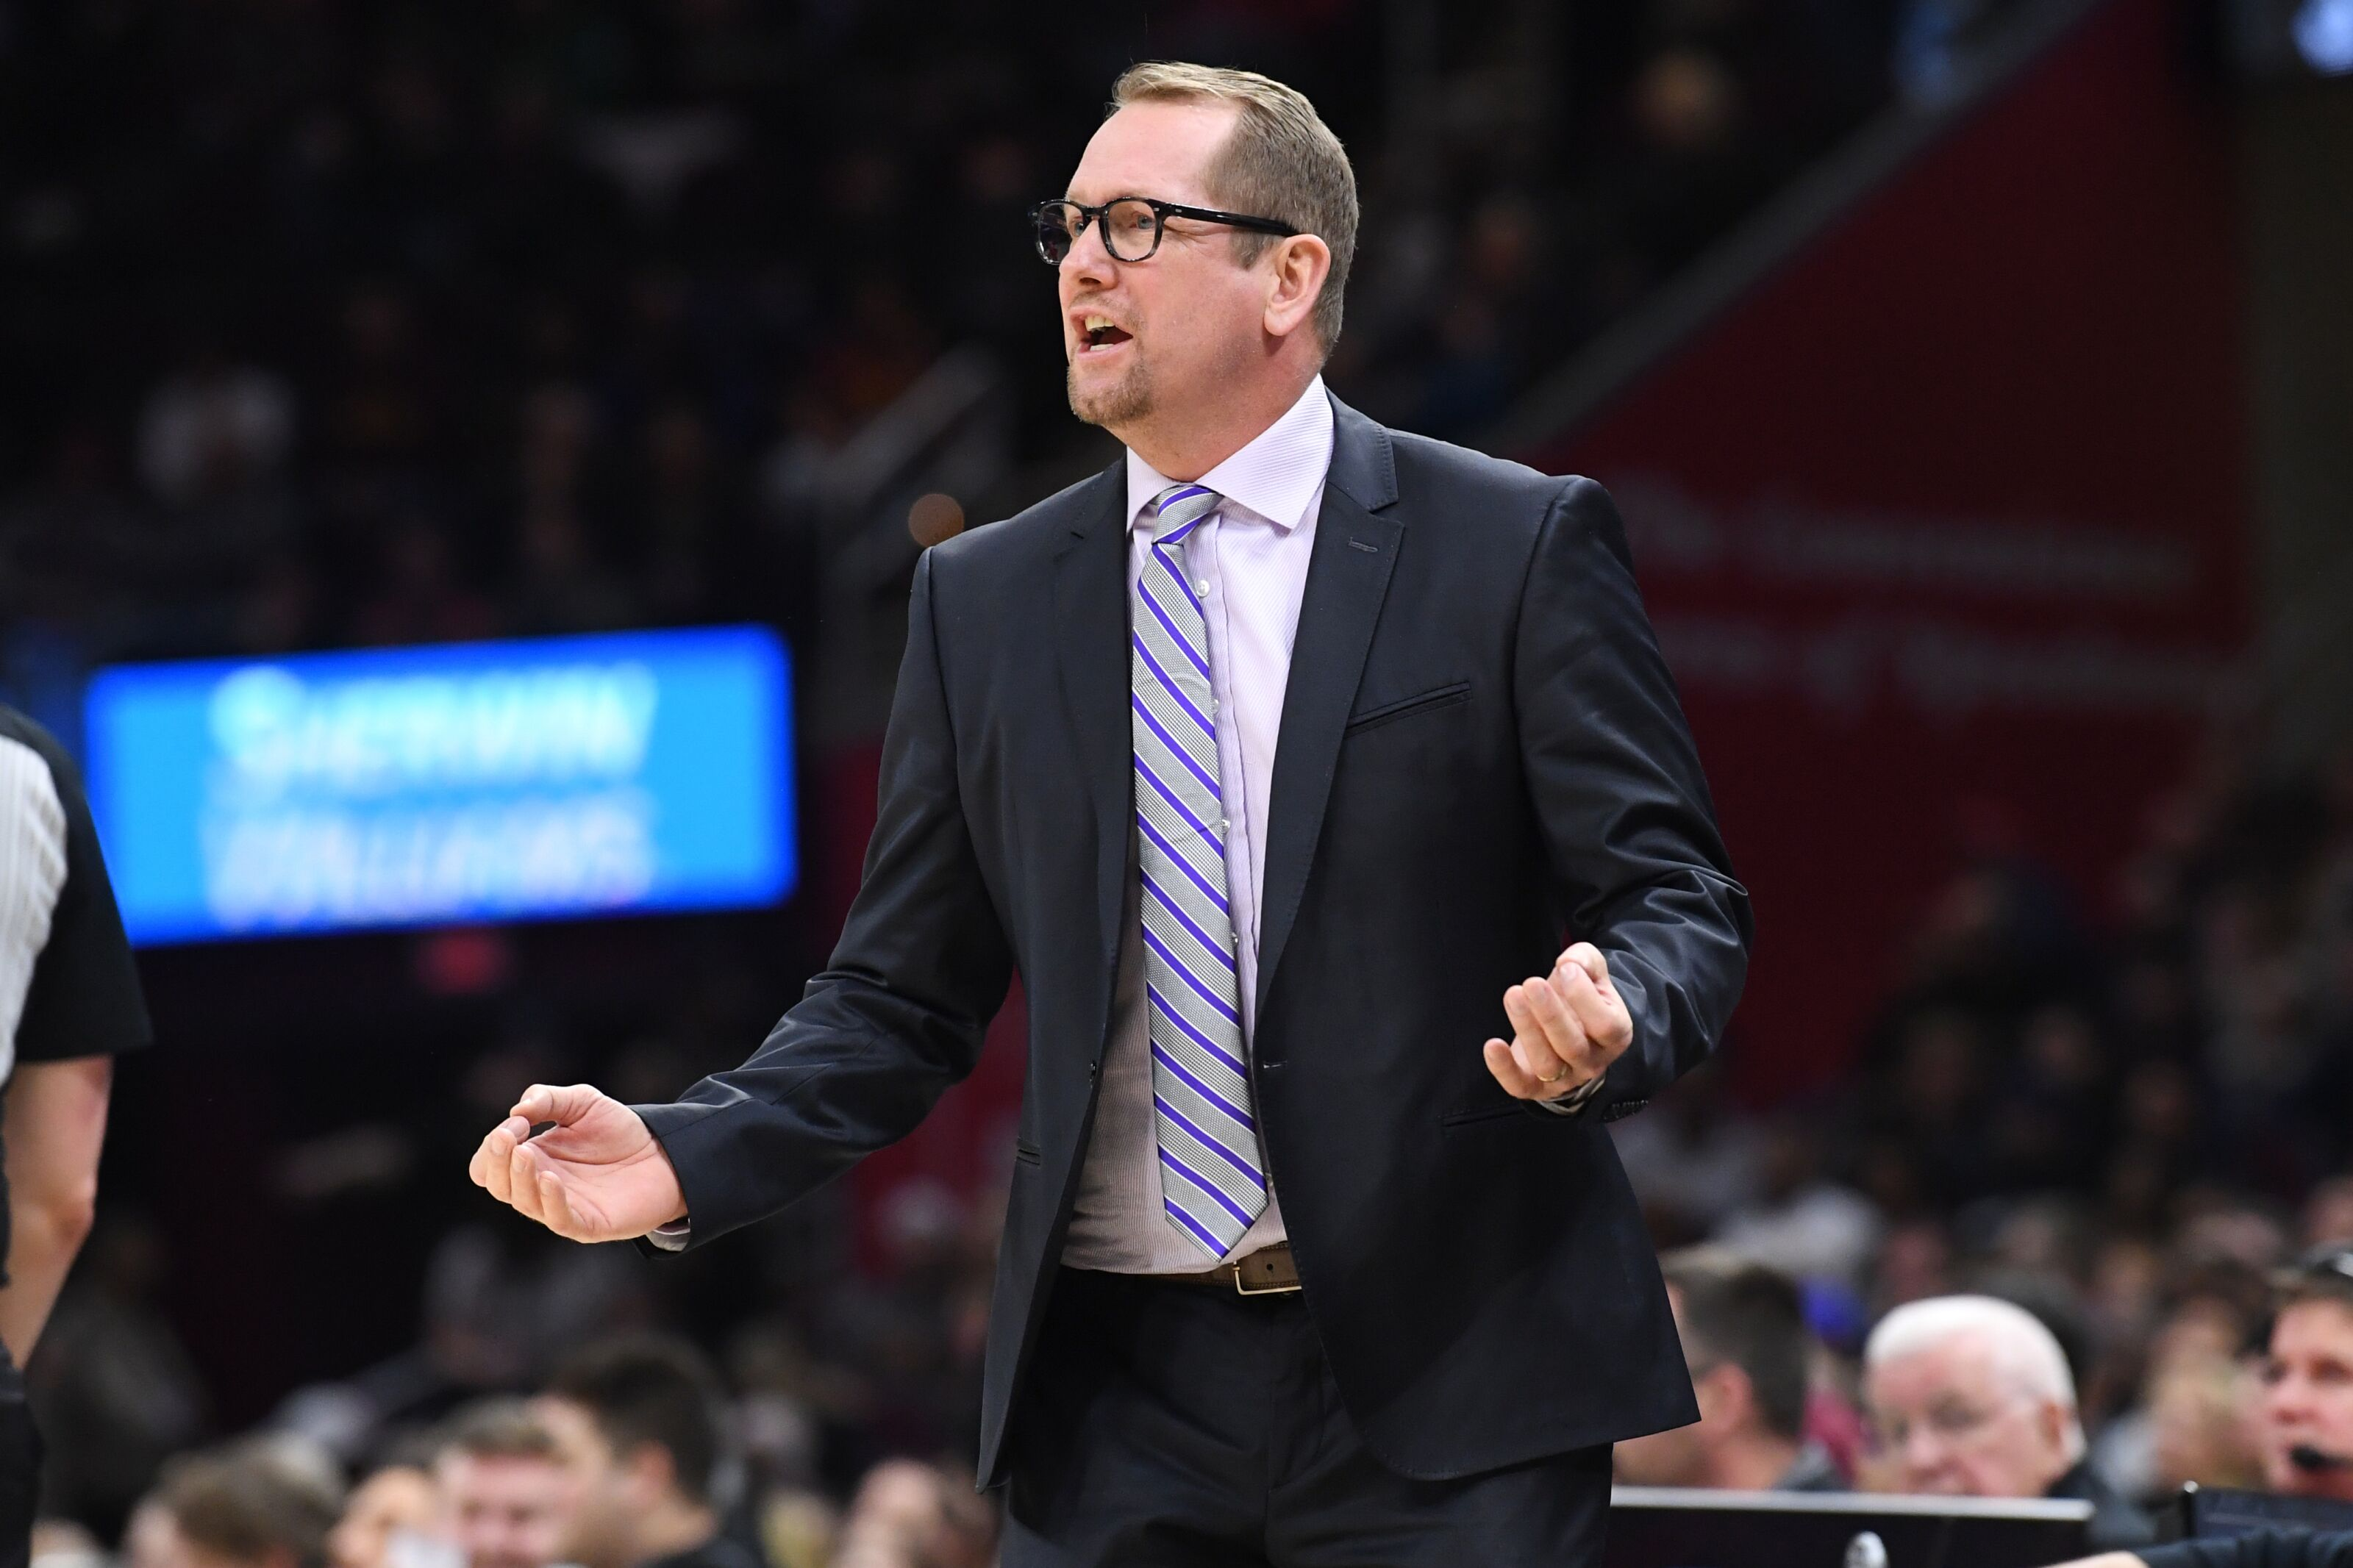 Nick Nurse just won the internet and we found the best memes